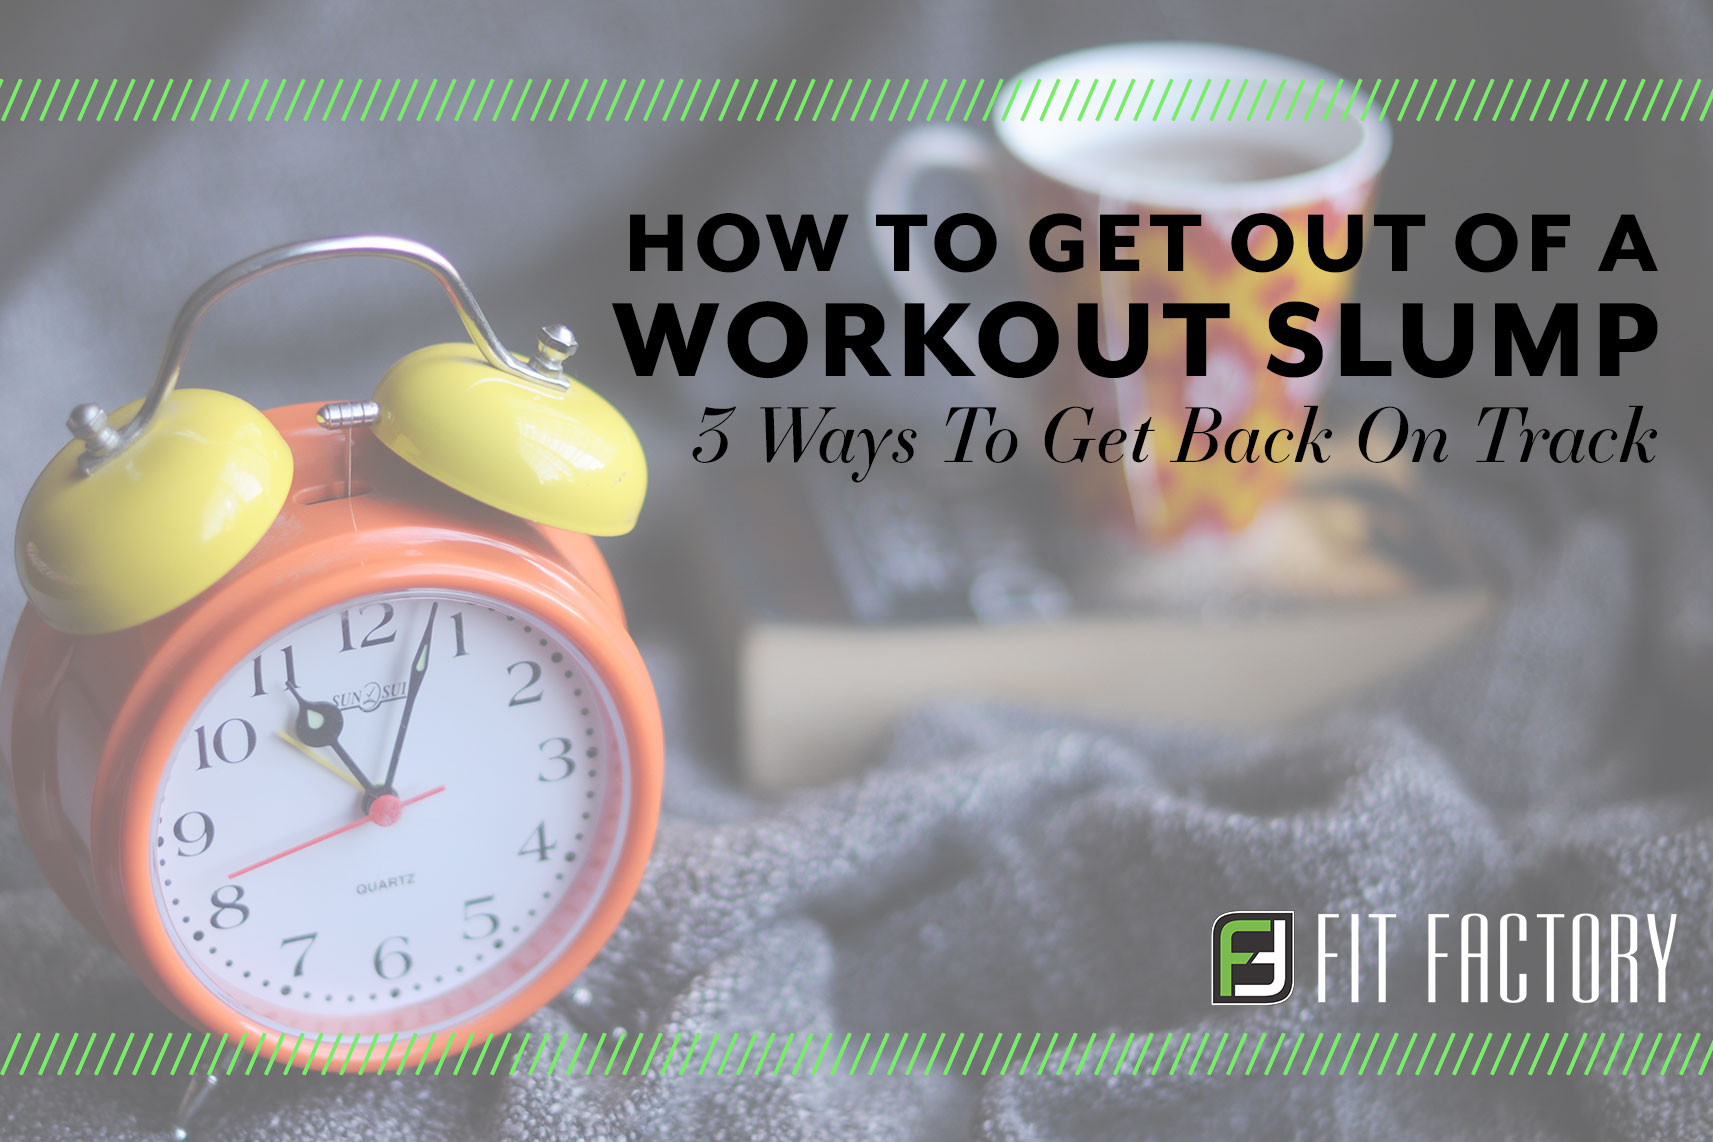 How To Get Out of a Workout Slump